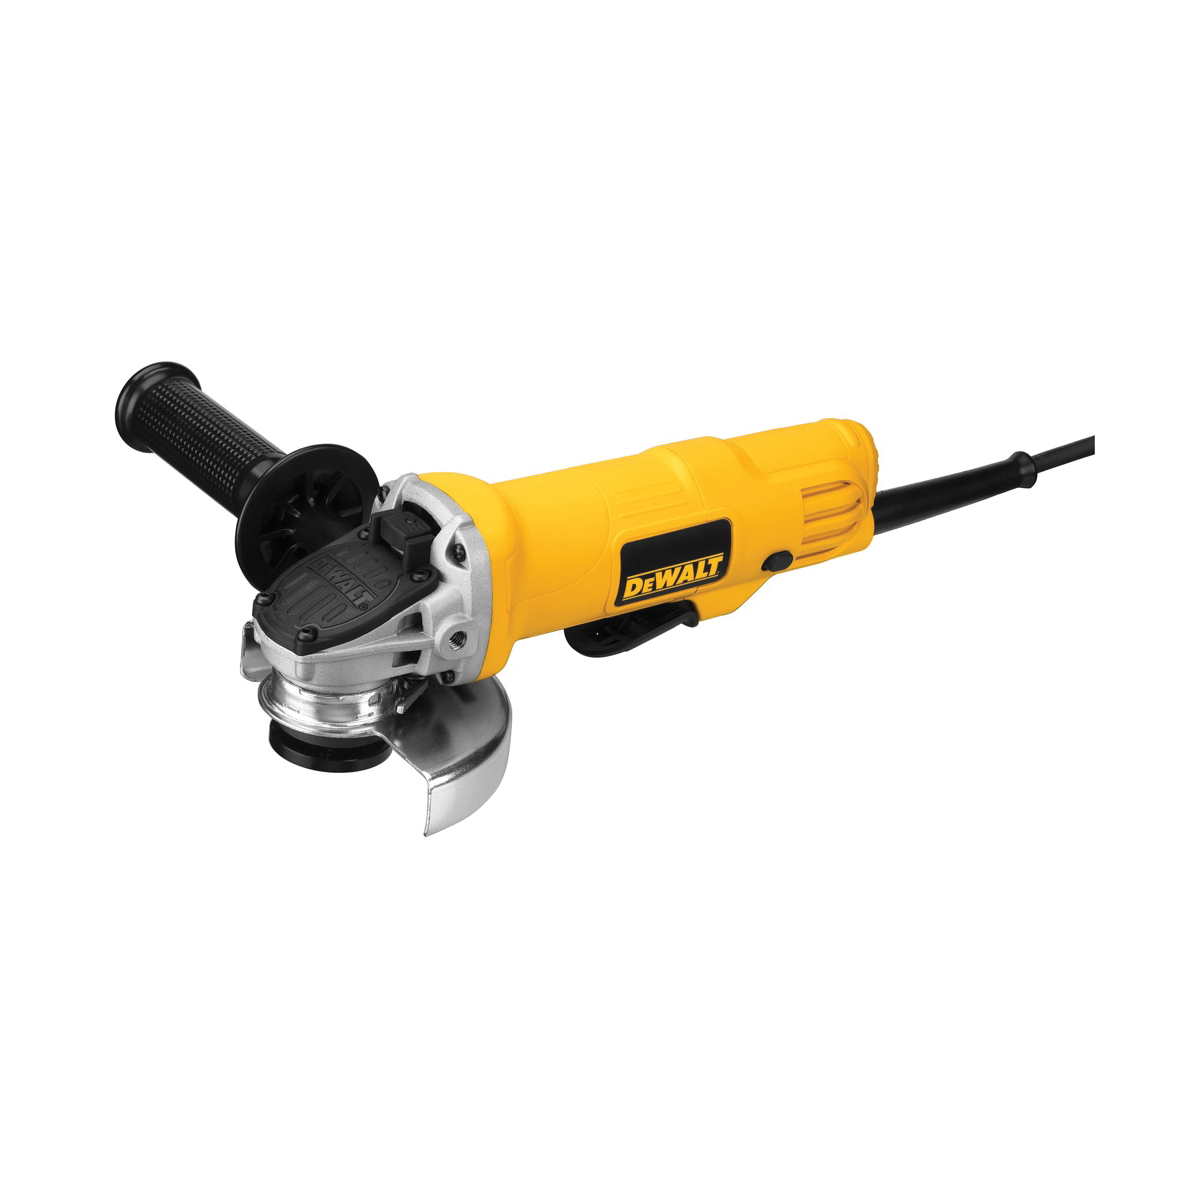 DeWALT® DWE4012 Small Angle Grinder, 4-1/2 in Dia Wheel, 5/8-11 Arbor/Shank, 120 VAC, For Wheel: Quick-Change™, Yellow, No, Lock-On Paddle Switch